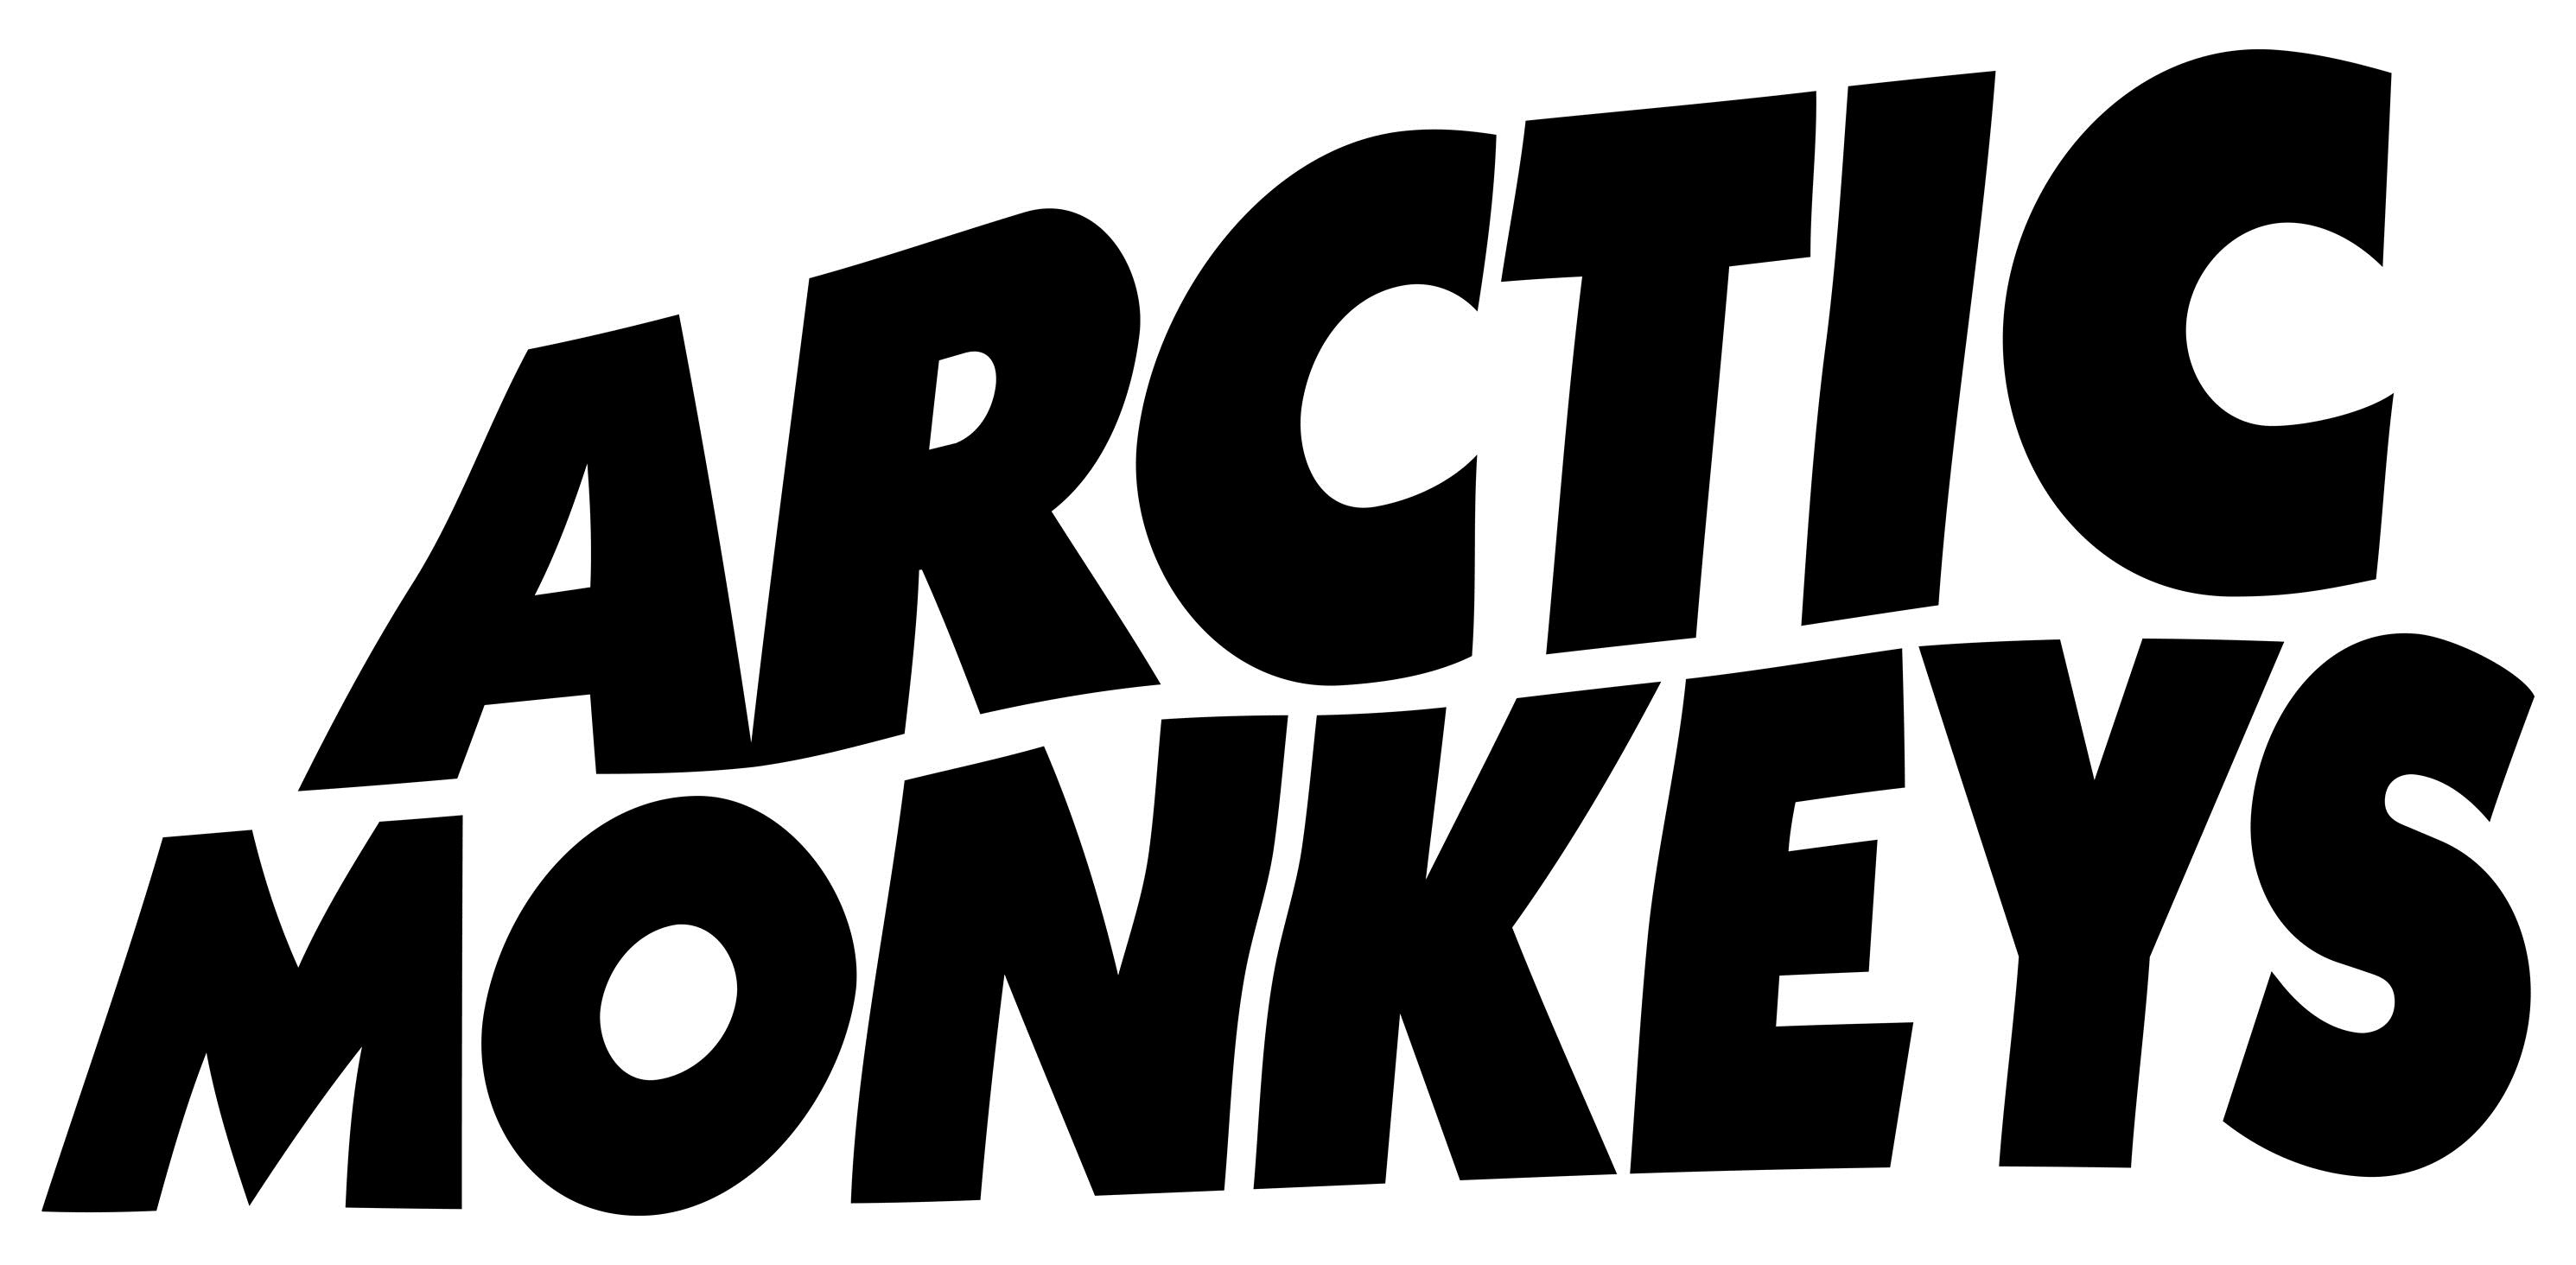 arctic-monkeys-logo-wallpaper.jpg